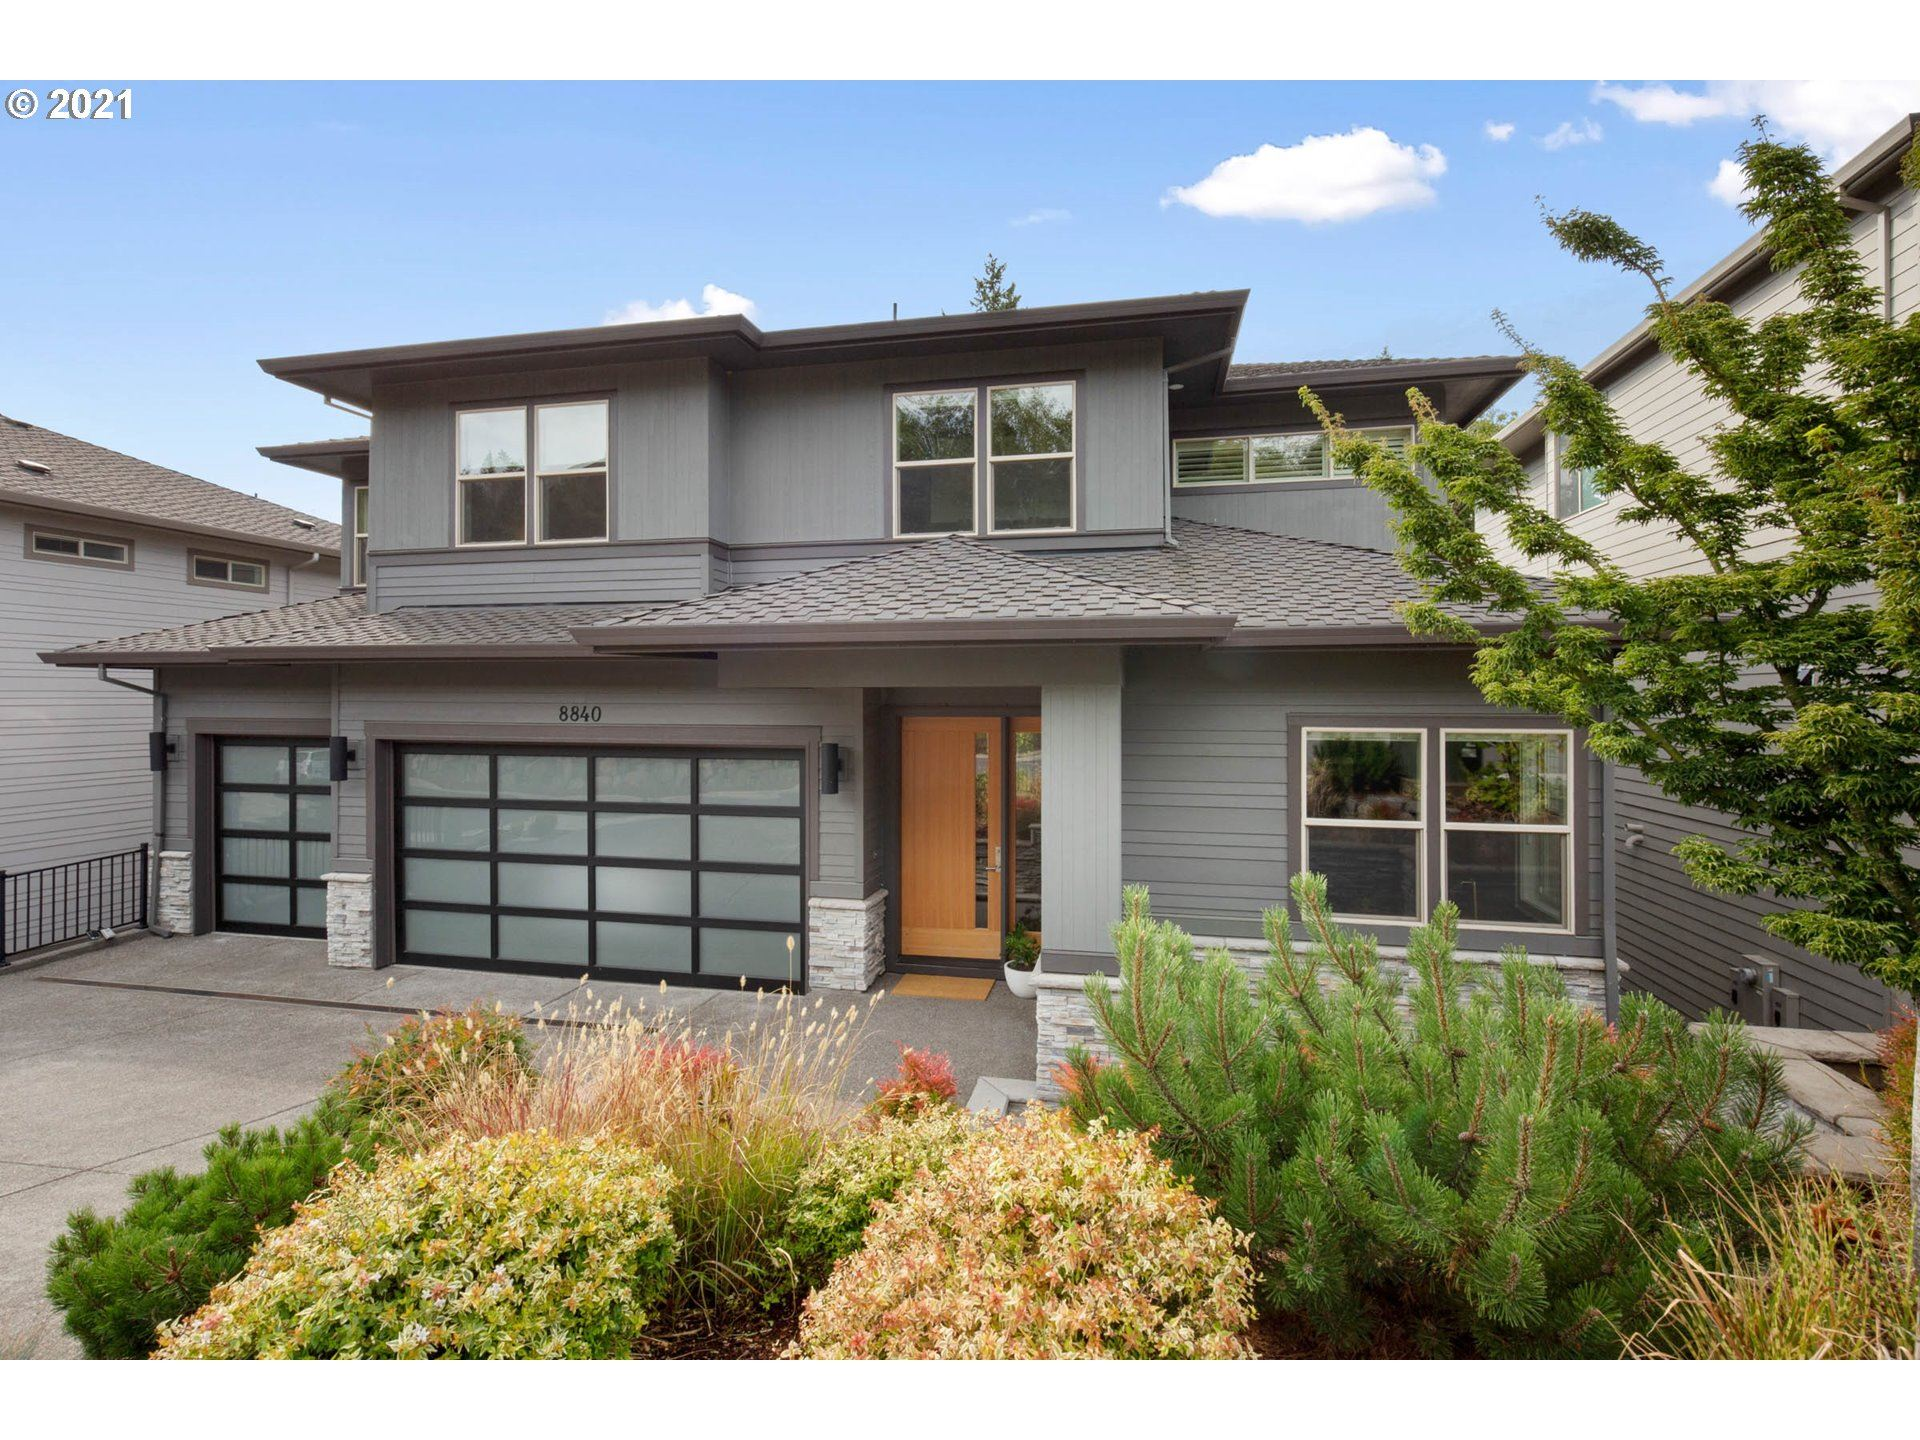 8840 NW MAPLEVIEW TER, Portland, OR 97229 - MLS#: 21605345